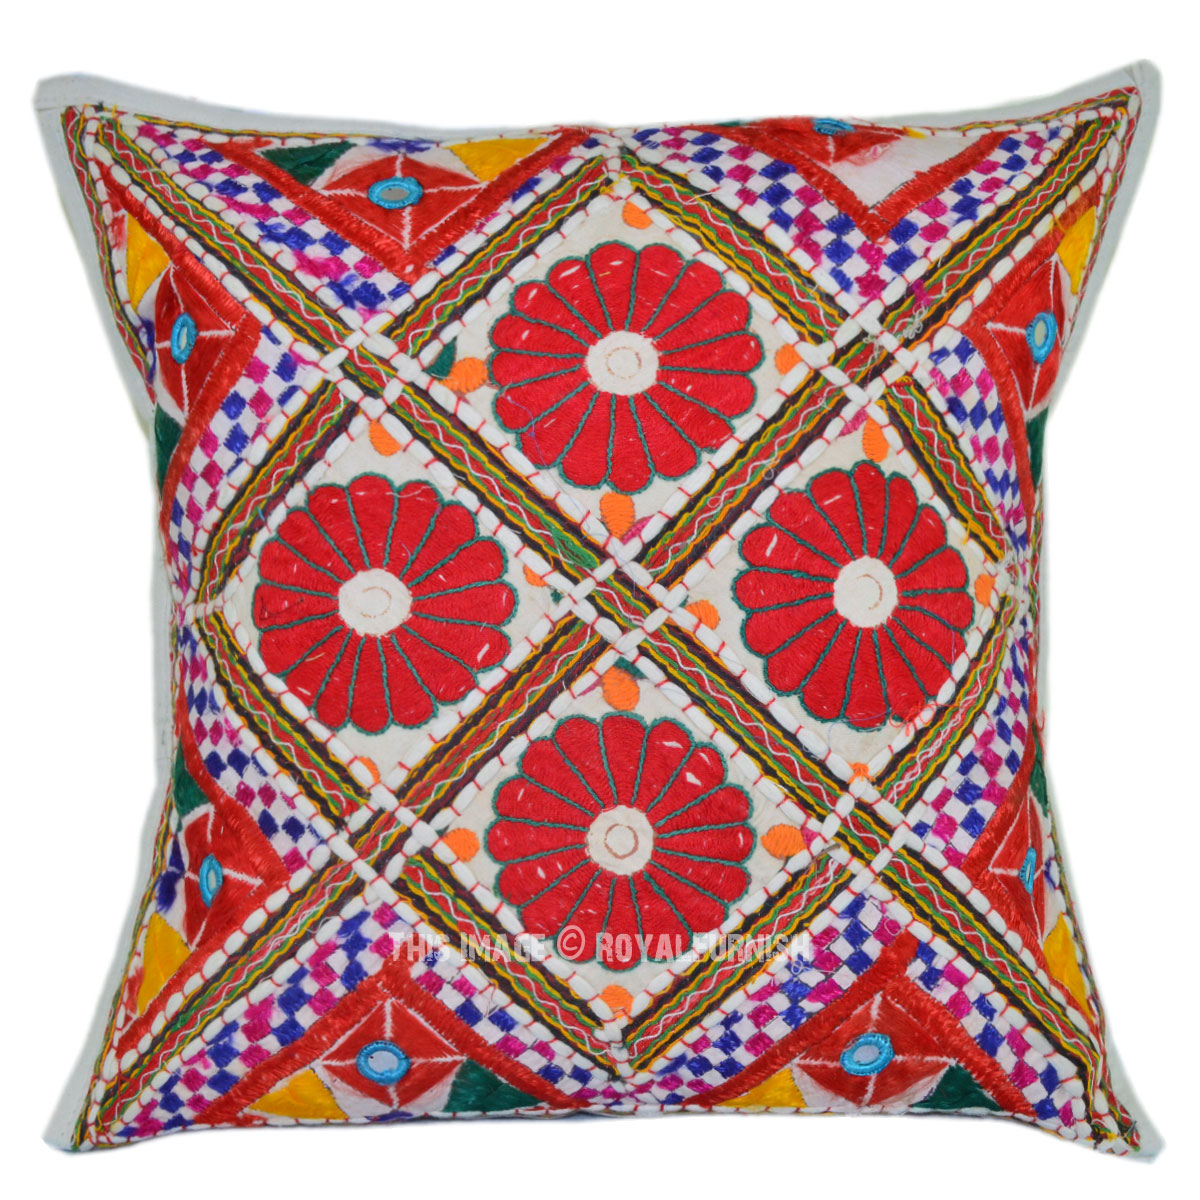 White Four Floral Multi Hand Embroidered Throw Pillow Cover - RoyalFurnish.com